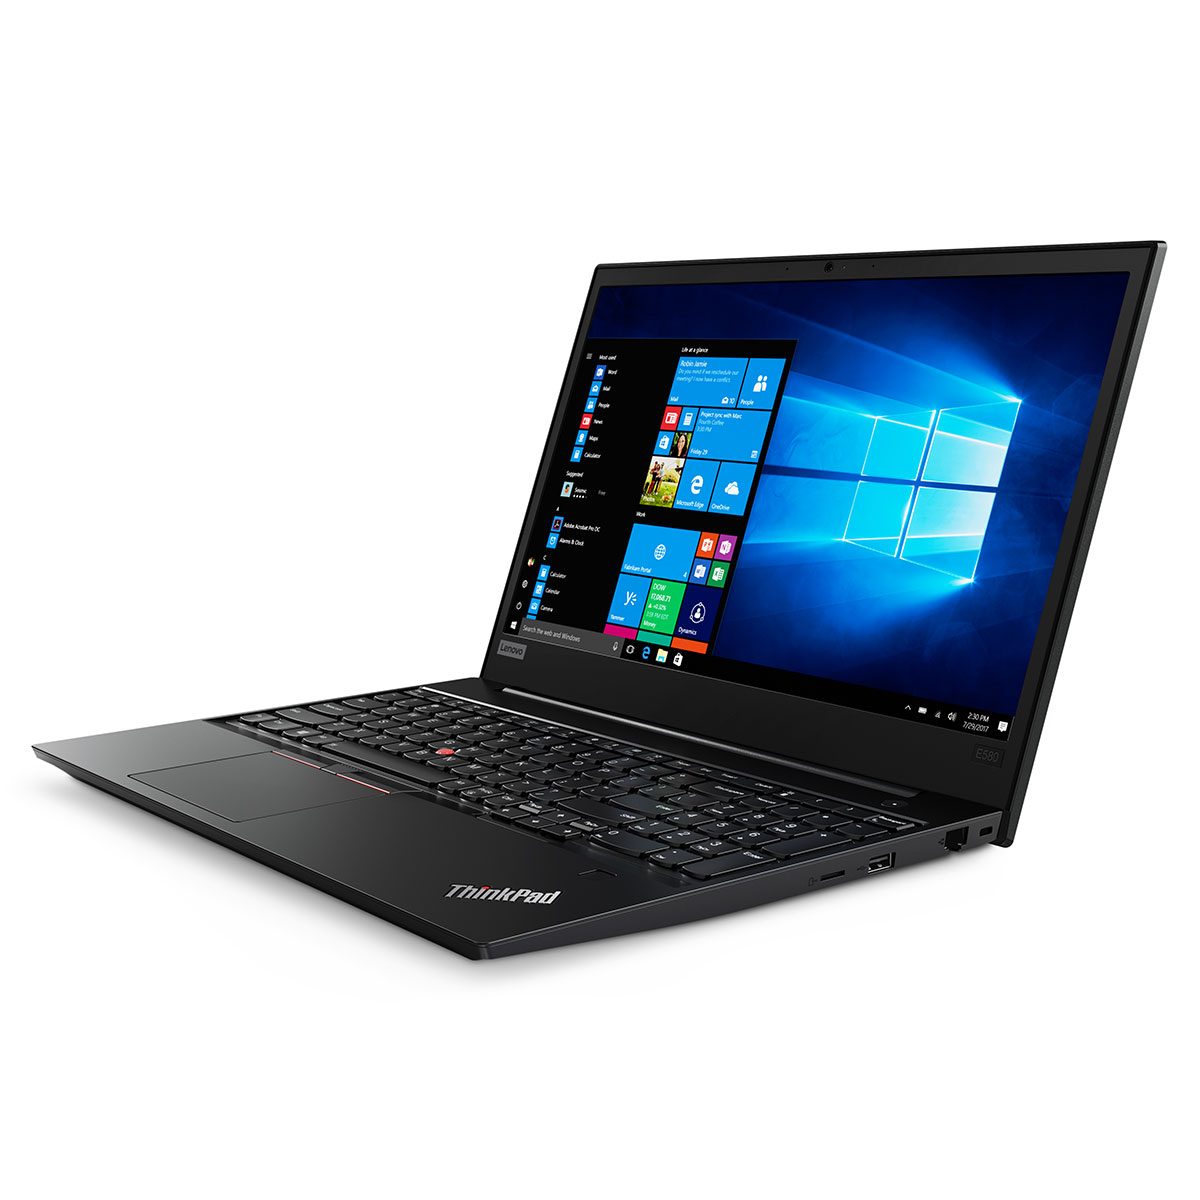 Lenovo ThinkPad E580